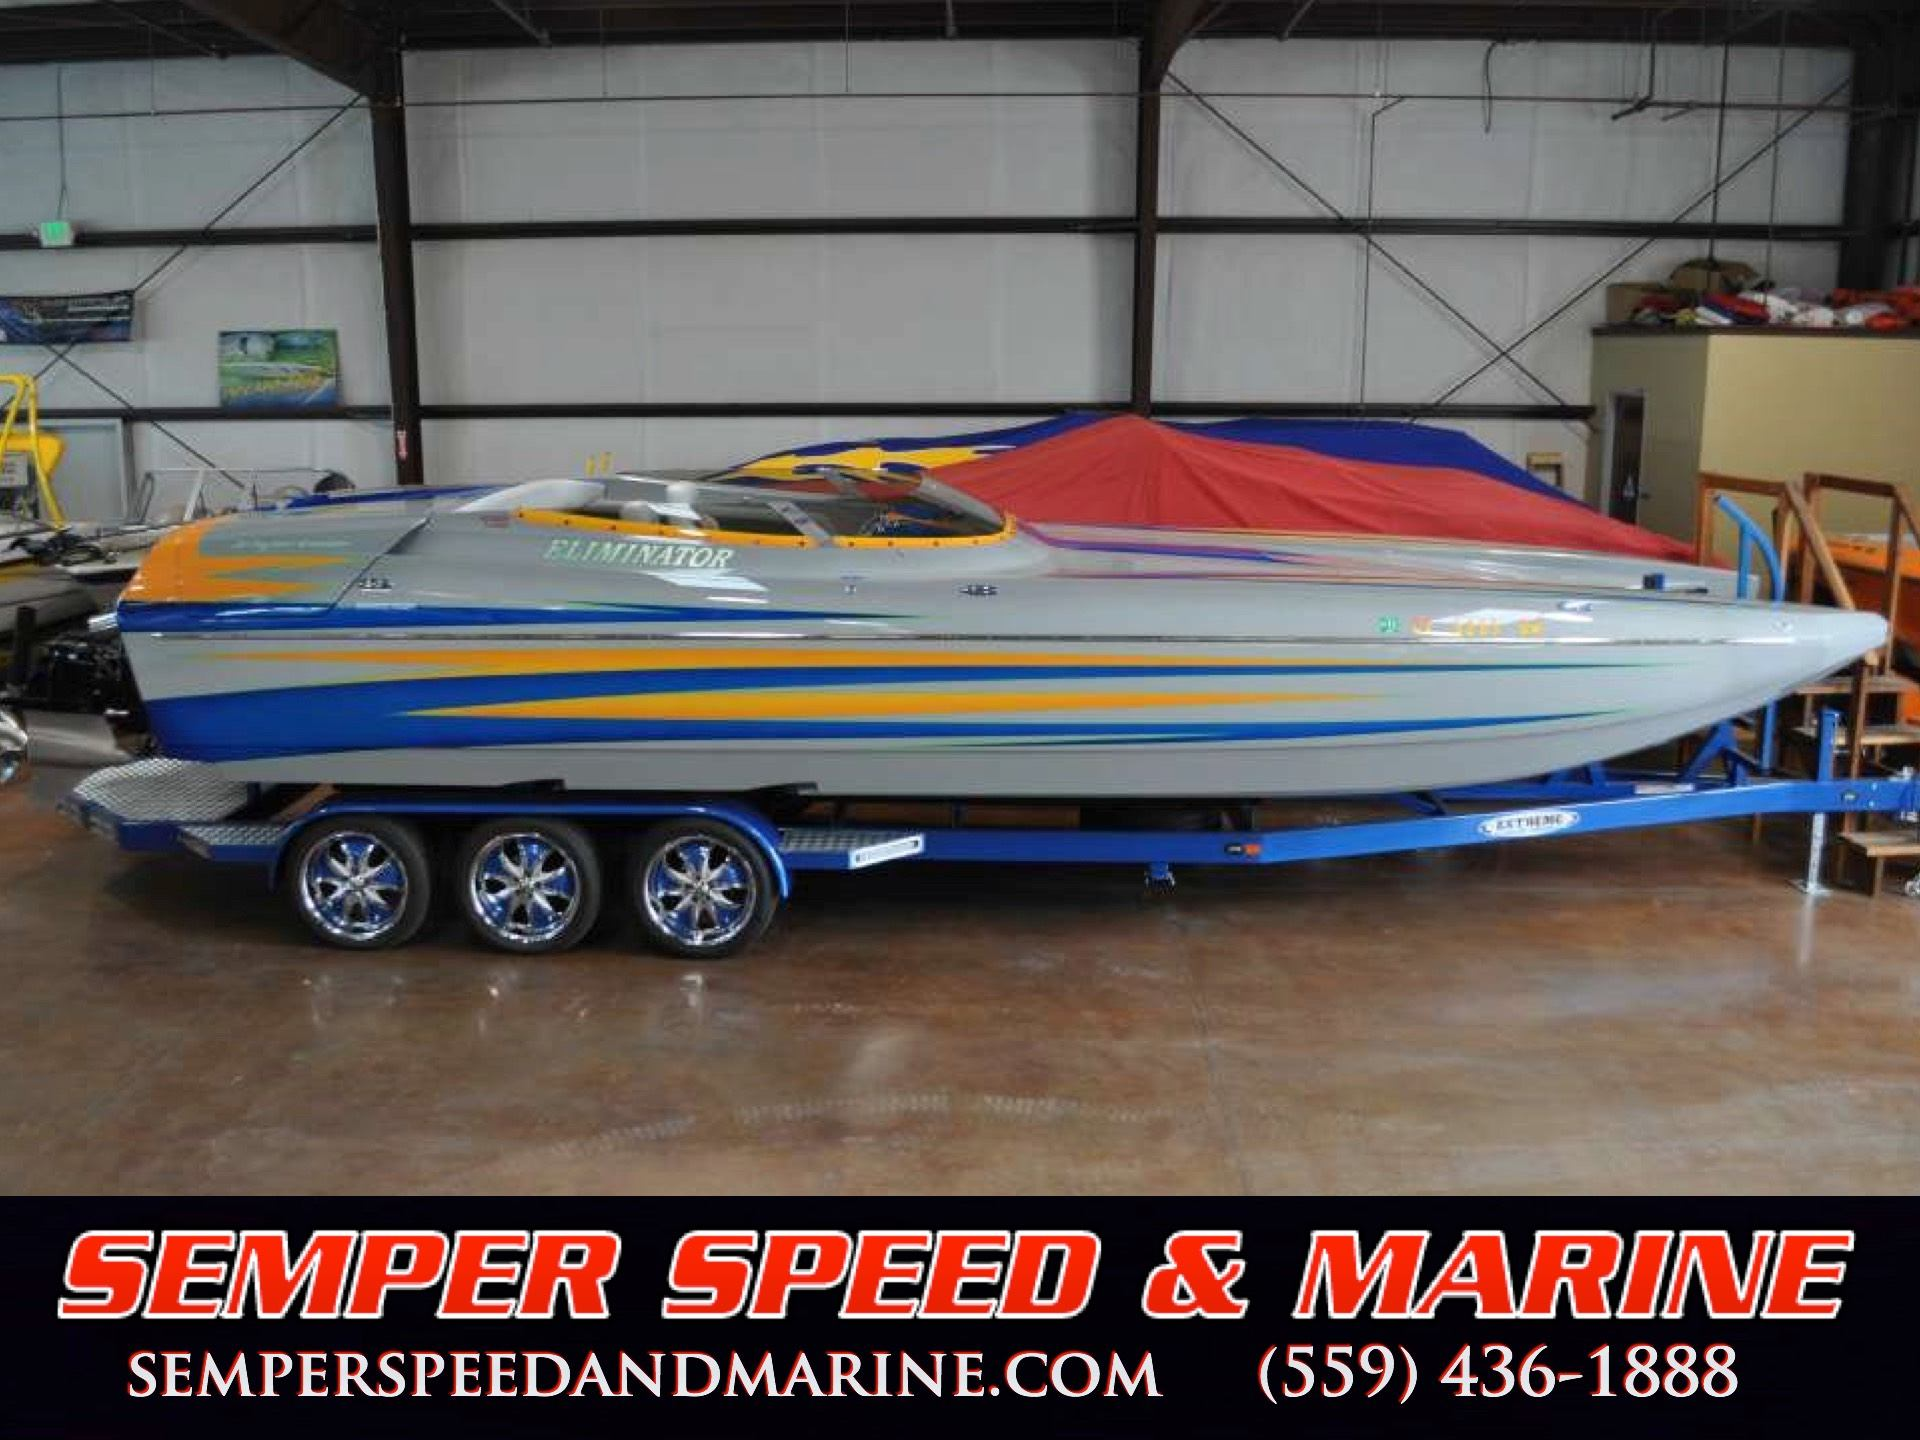 Eliminator Boats 28 ft. Daytona Speedster